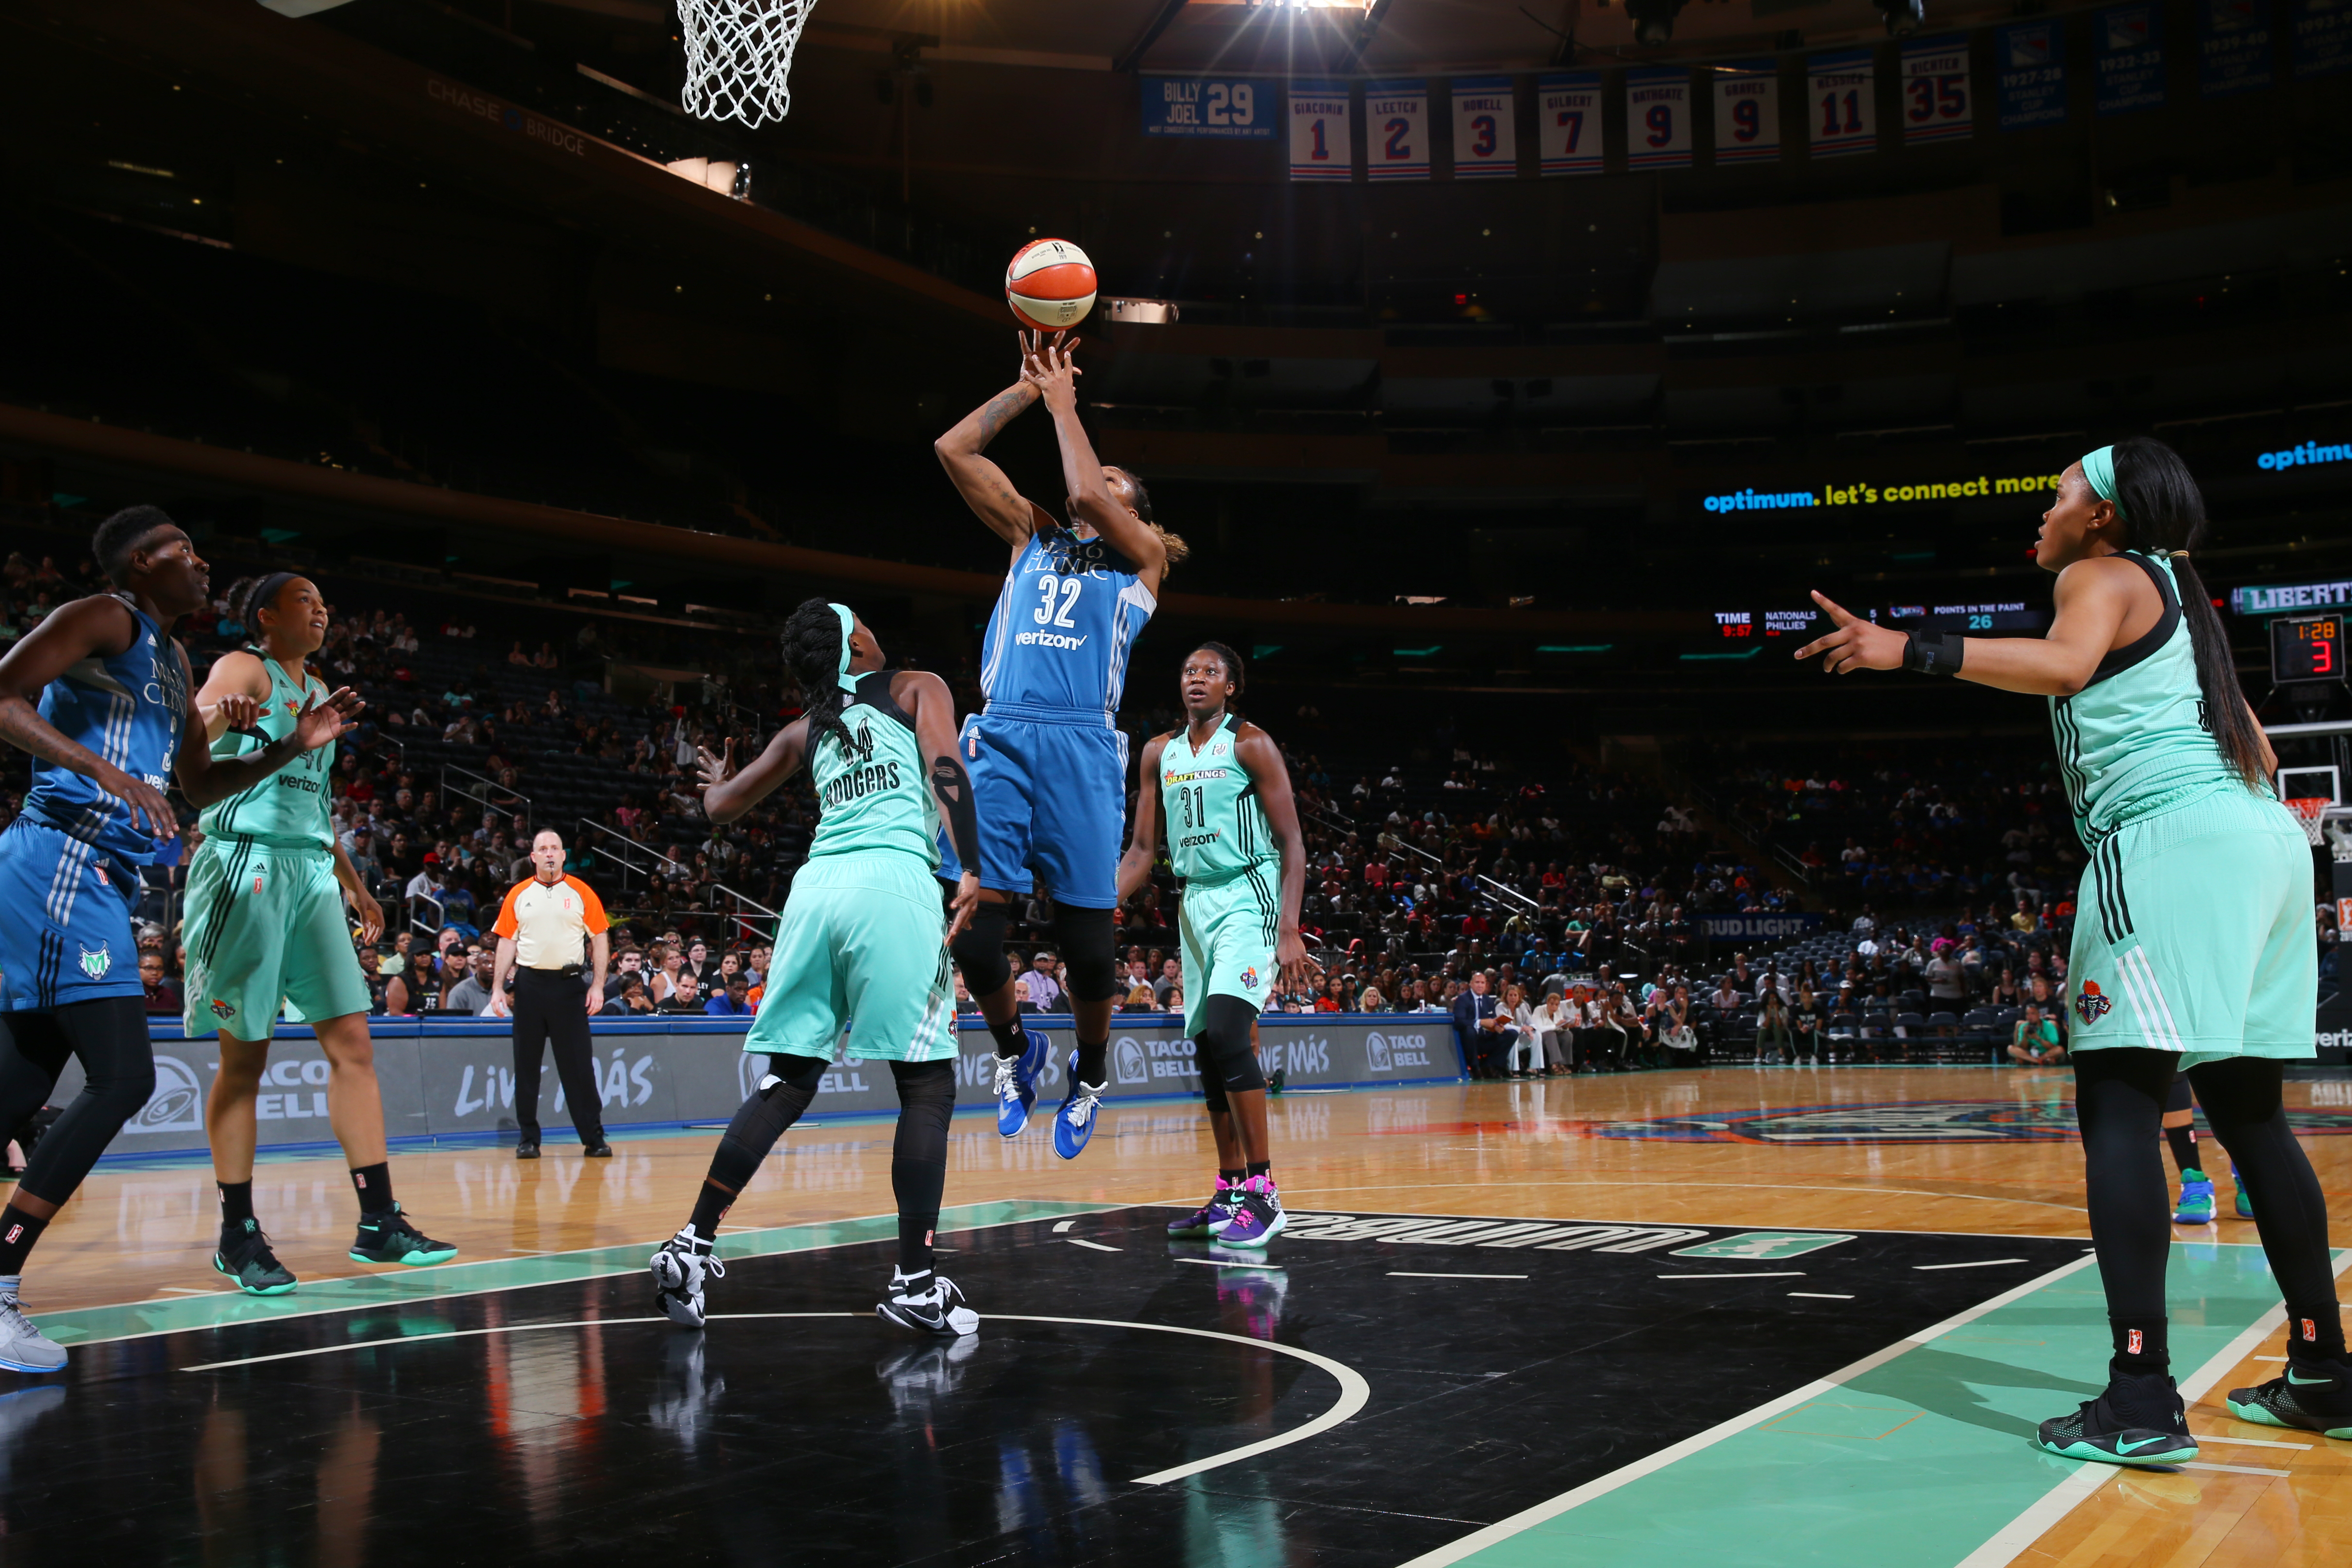 NEW YORK, NY - MAY 31: Rebekkah Brunson #32 of the Minnesota Lynx shoots against the New York Liberty during the game on May 31, 2016 at Madison Square Garden in New York, New York. NOTE TO USER: User expressly acknowledges and agrees that, by downloading and or using this Photograph, user is consenting to the terms and conditions of the Getty Images License Agreement. Mandatory Copyright Notice: Copyright 2016 NBAE (Photo by Mike Stobe/NBAE via Getty Images)